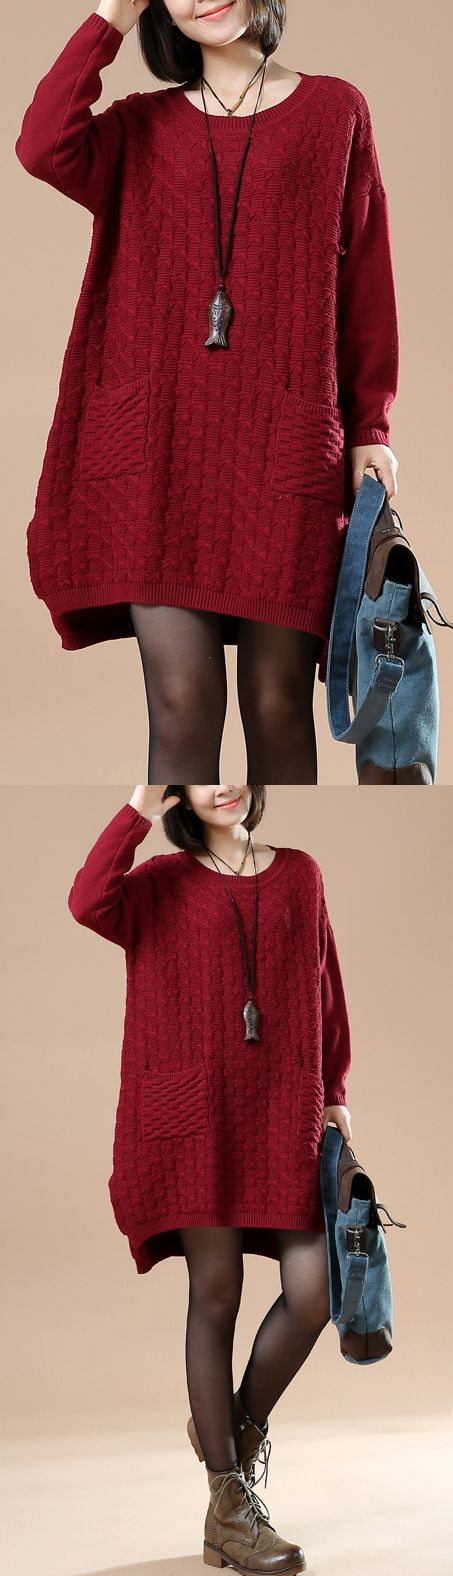 Burgundy cute sweater dresses witner knit pullover